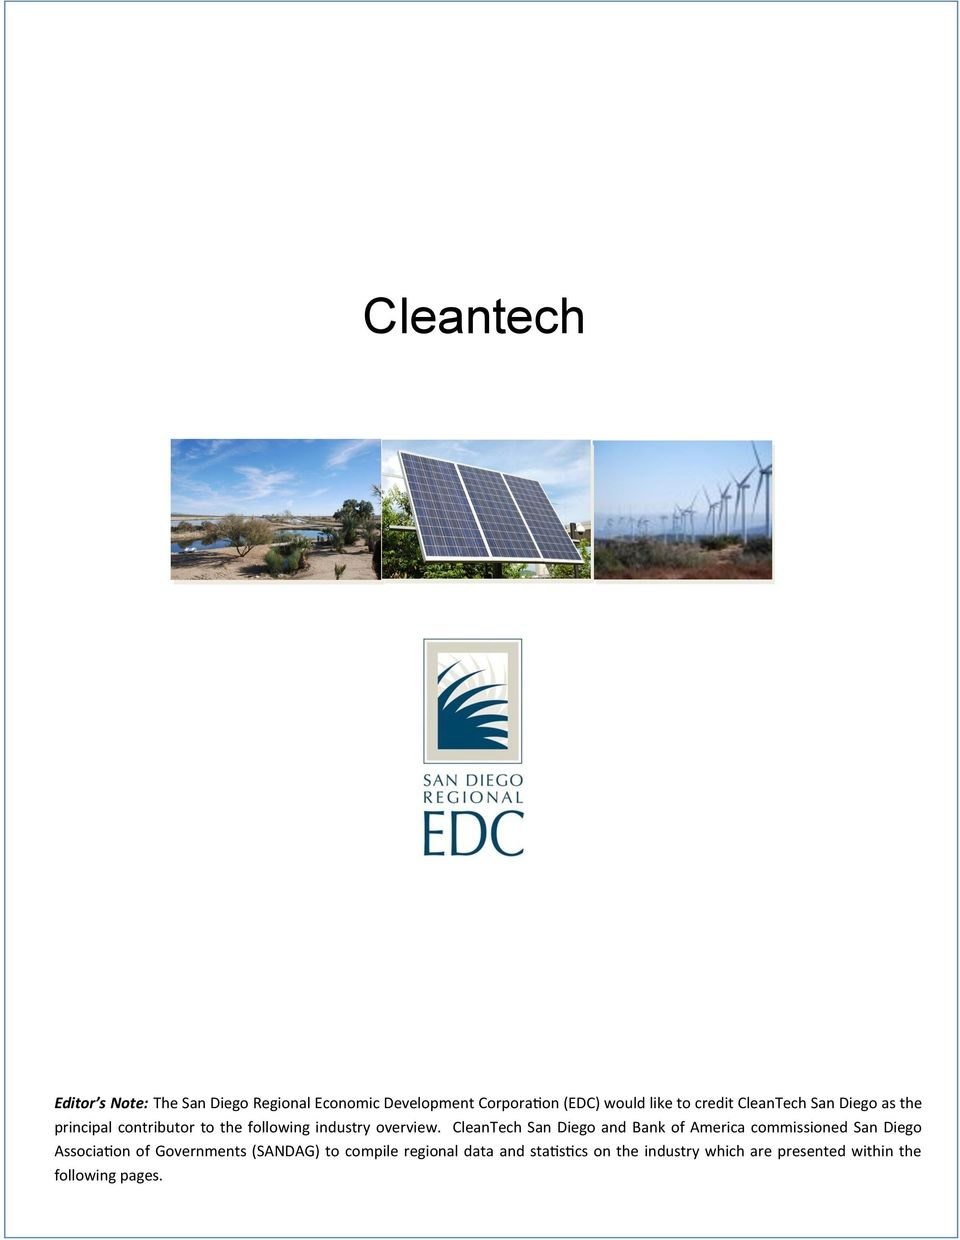 CleanTech San Diego and Bank of America commissioned San Diego Association of Governments (SANDAG)